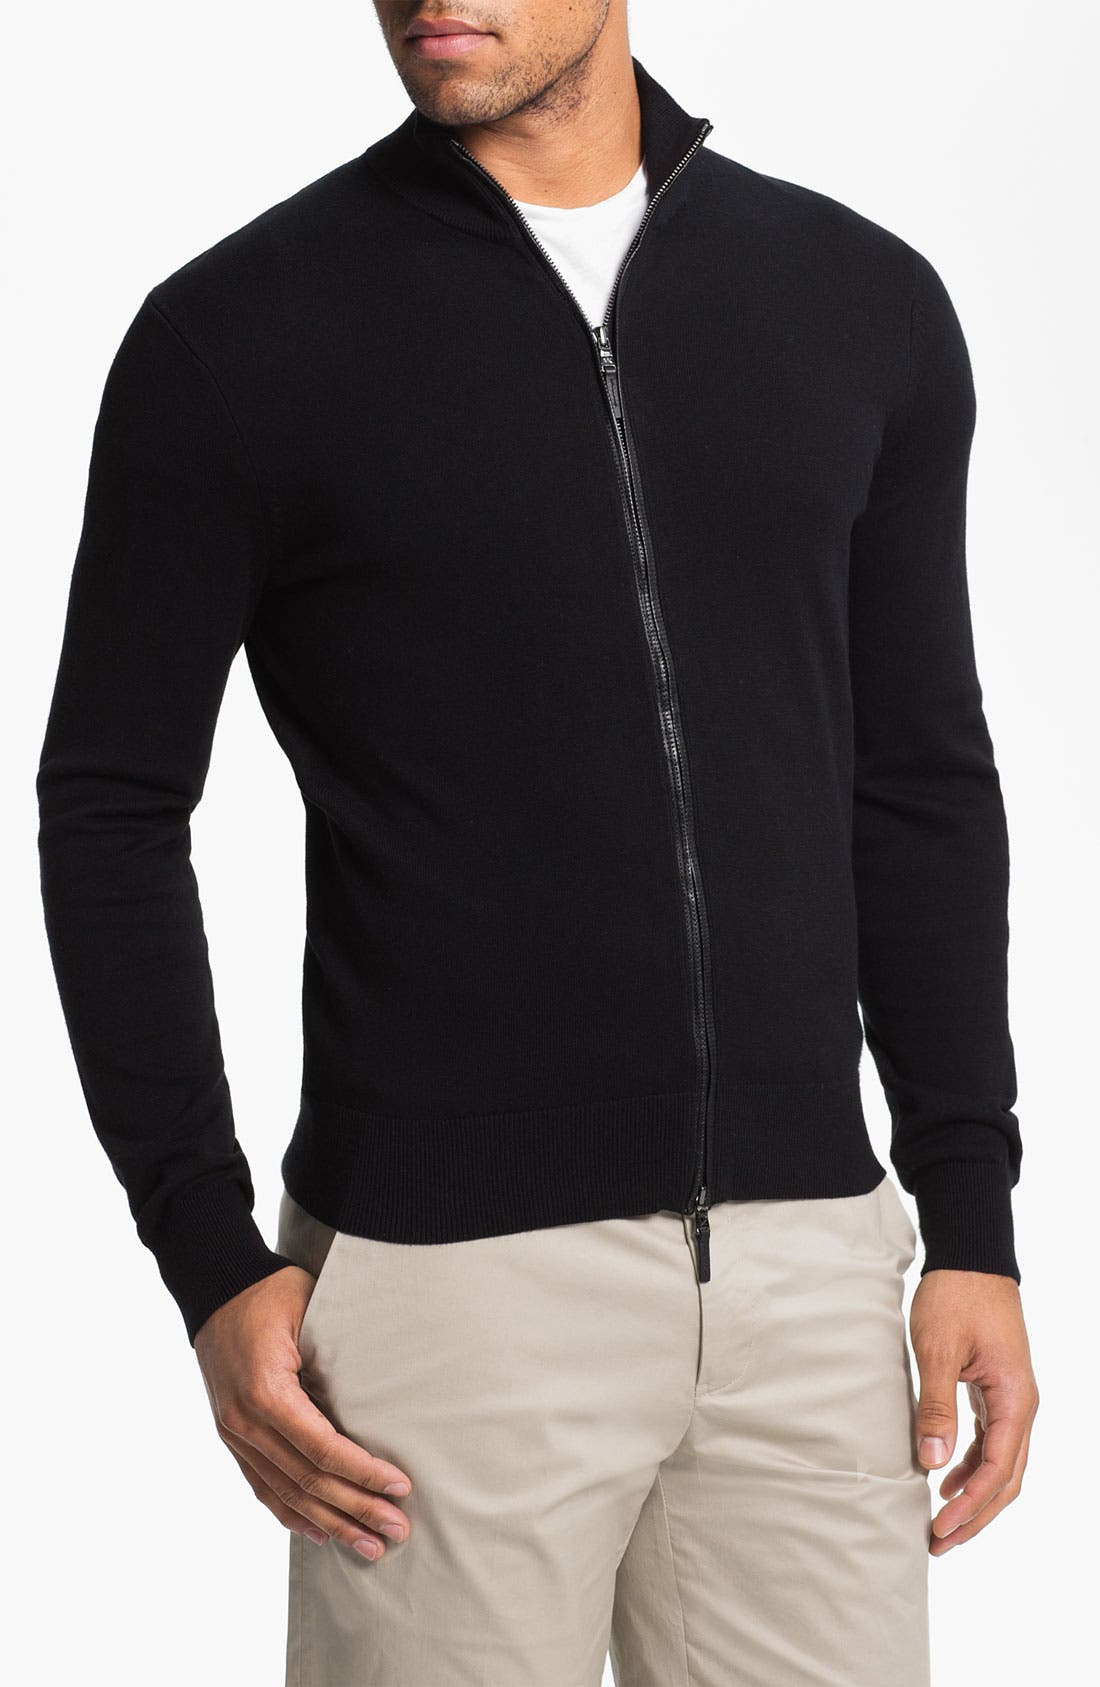 Main Image - Michael Kors Zip Cardigan